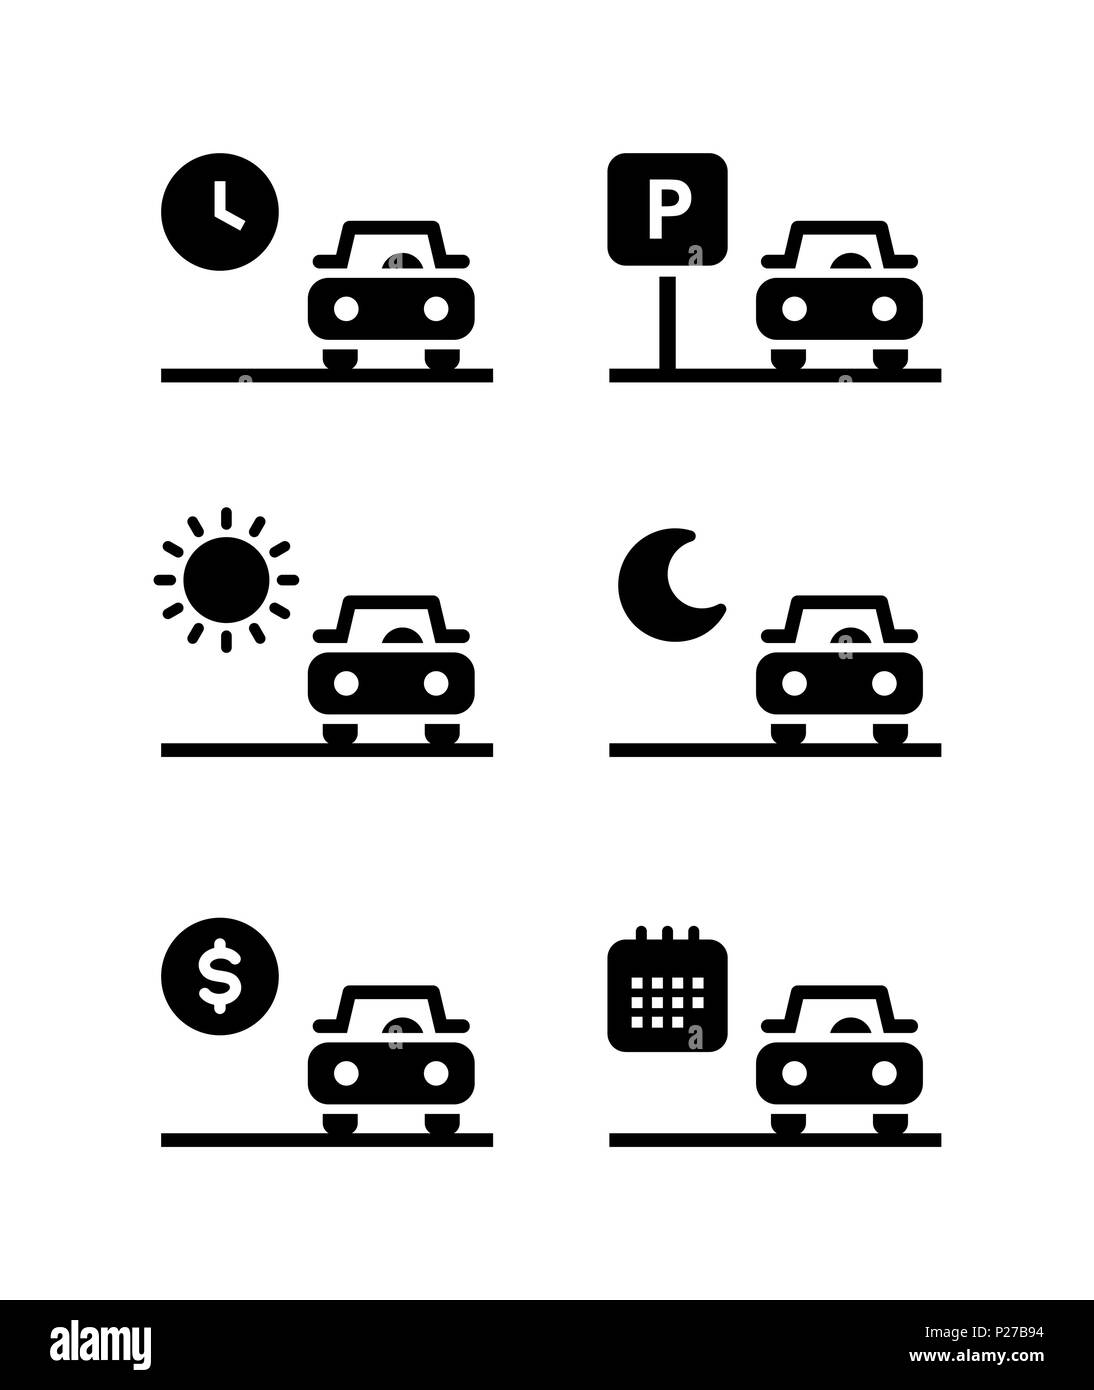 Car rent, parking, sell simple vector filled black icons set .Isolated on white background - Stock Image